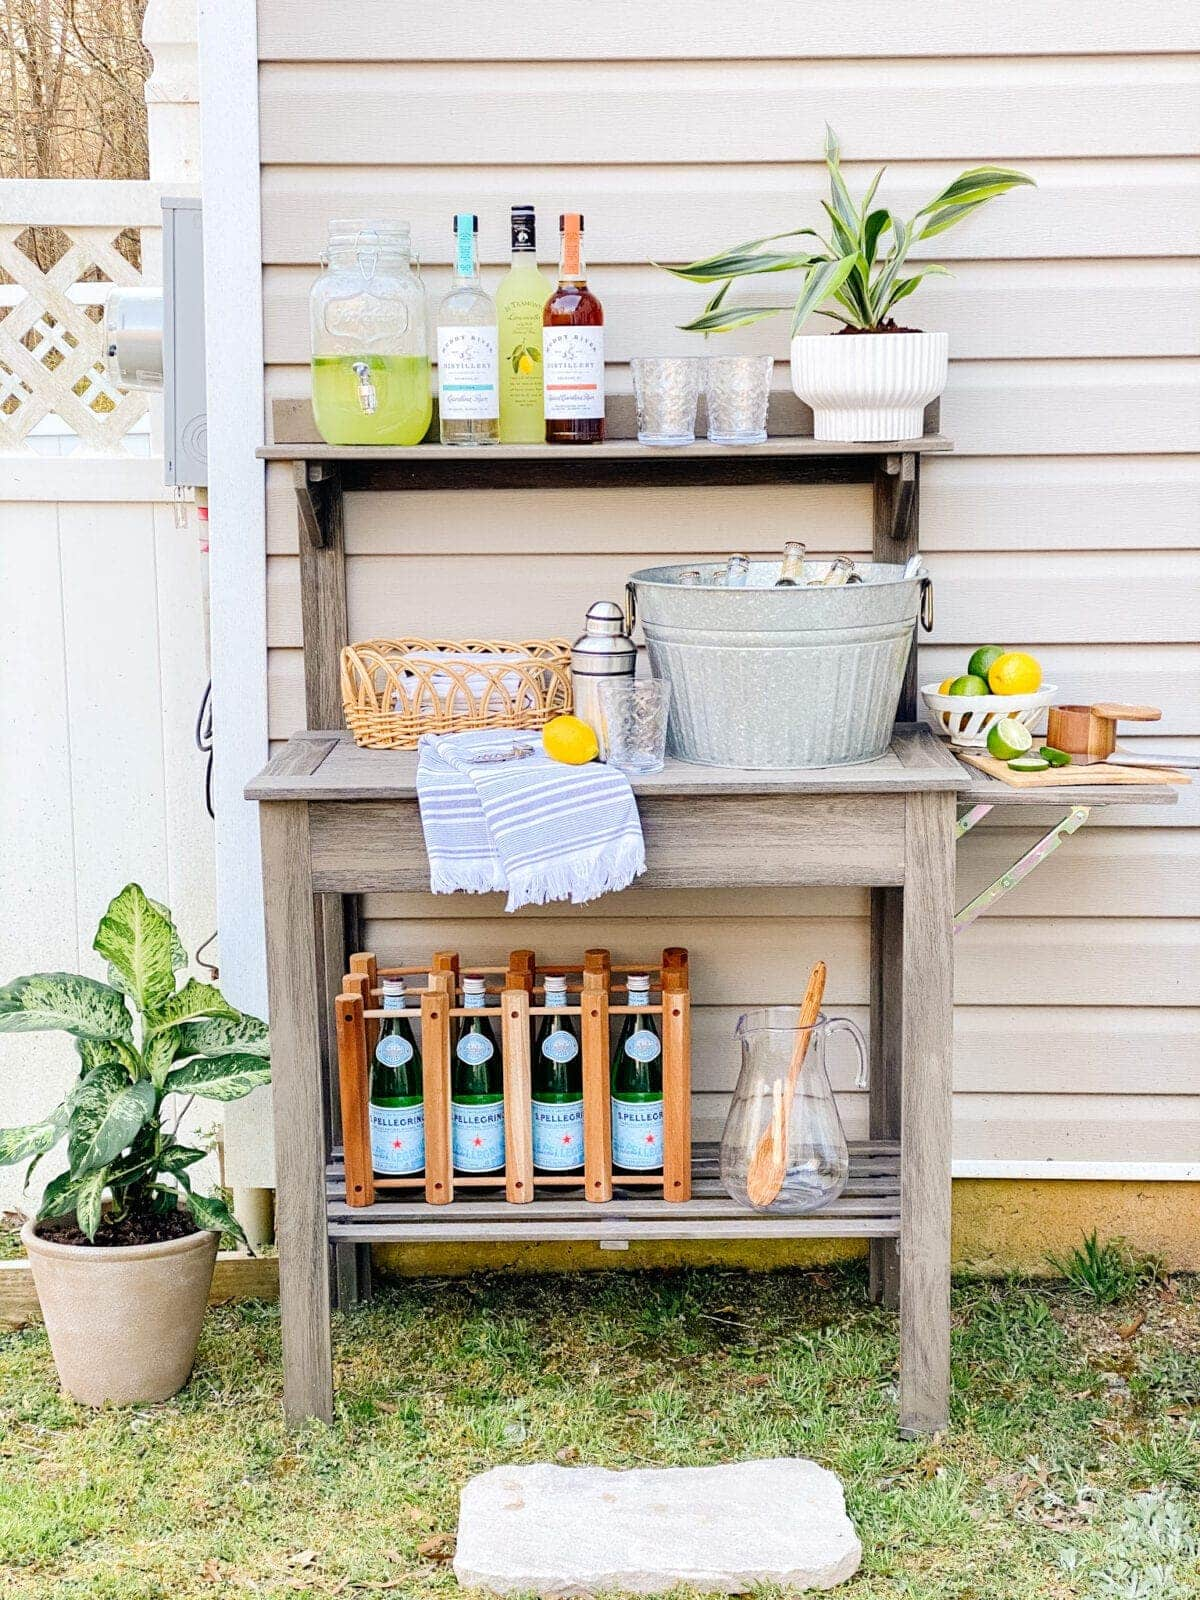 things to buy while thrift shopping : buckets and baskets pictured on outdoor bar